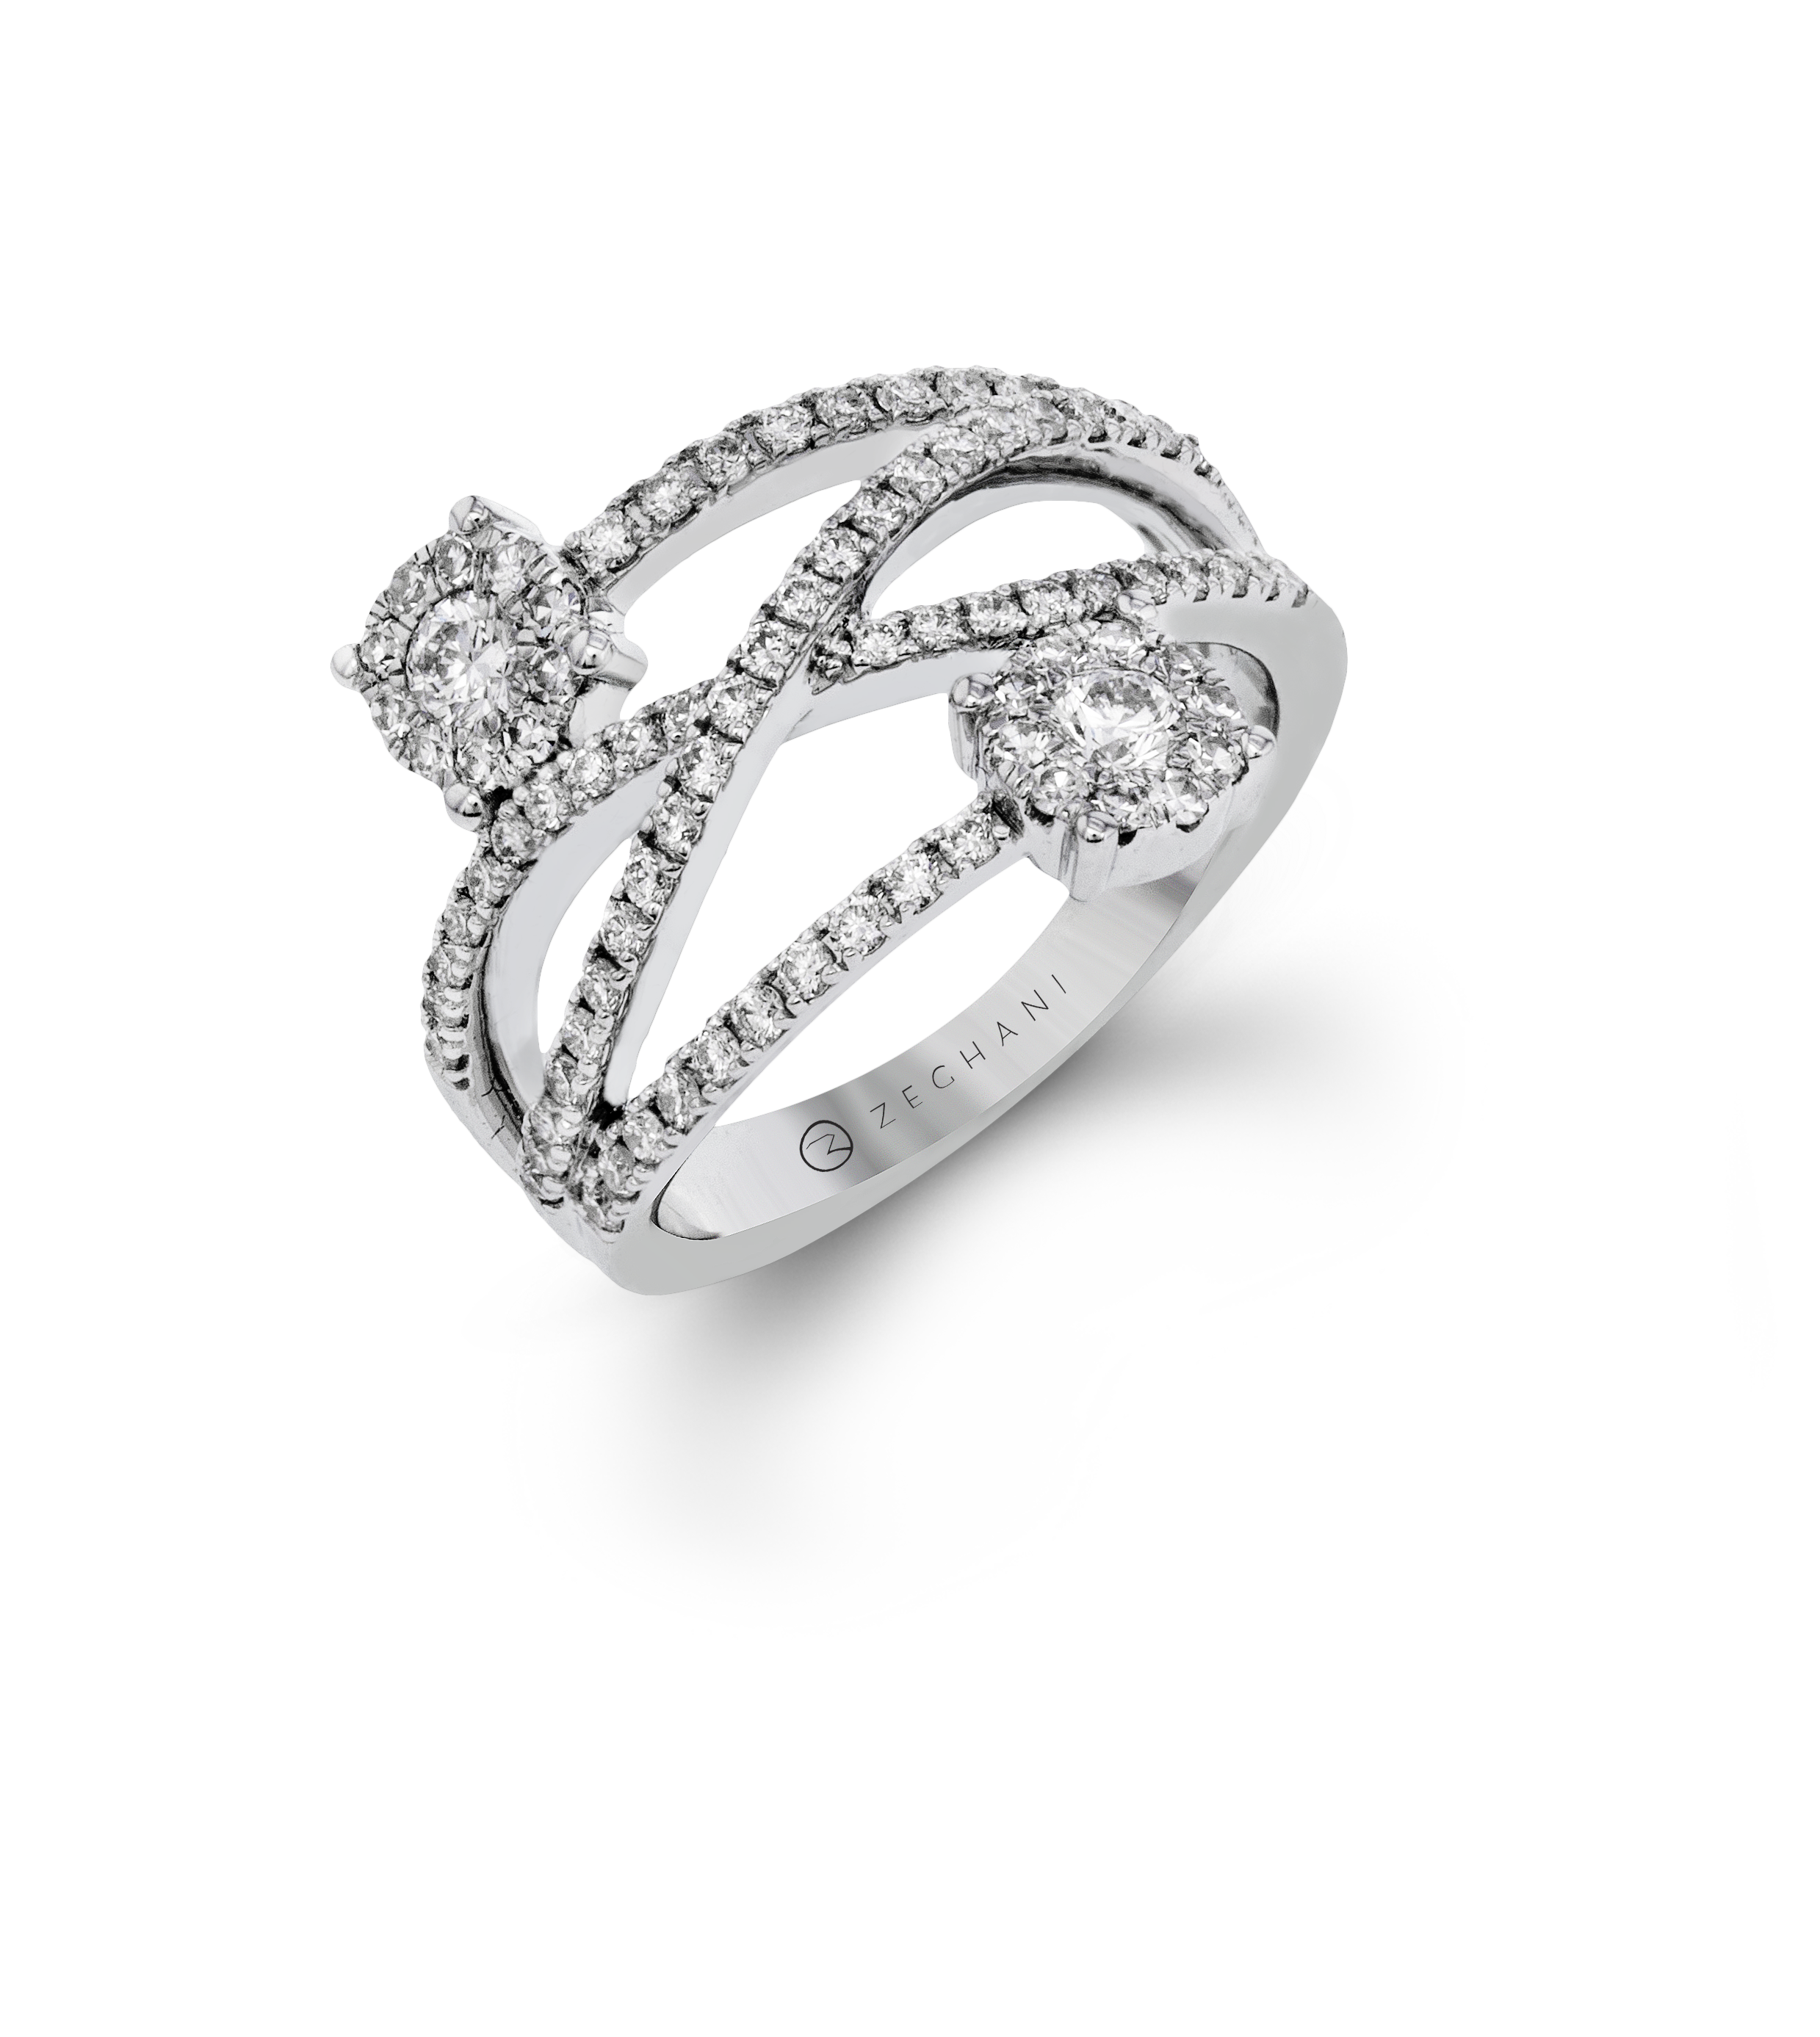 ZR1393 RightHand Ring Right hand rings, Fashion rings